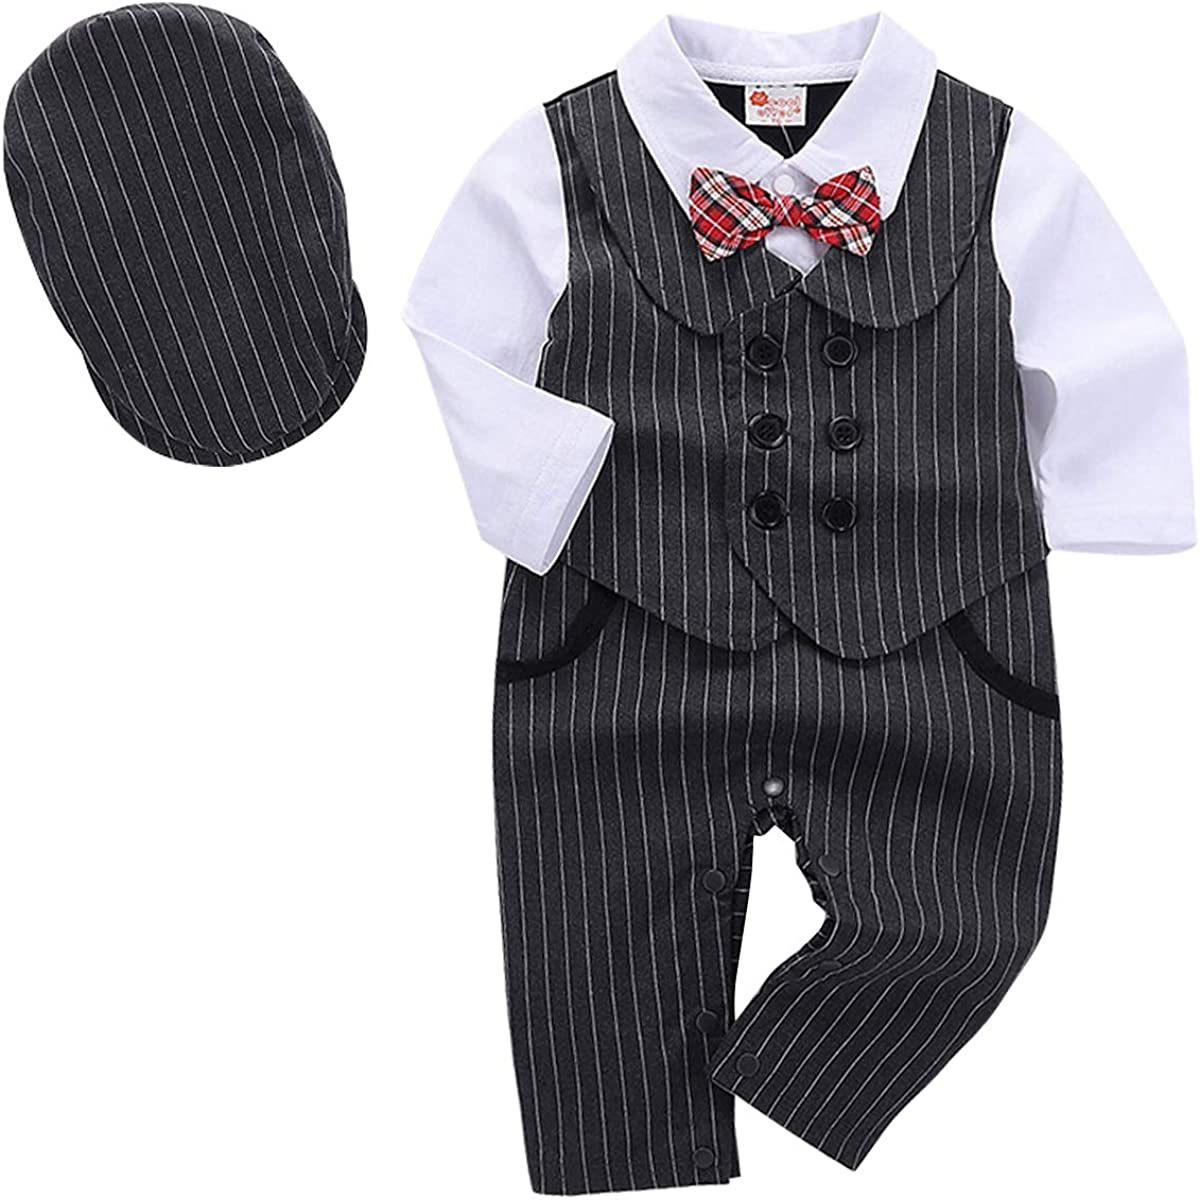 Bebone Baby Boy Formal Clothes Outfit Christening Suit